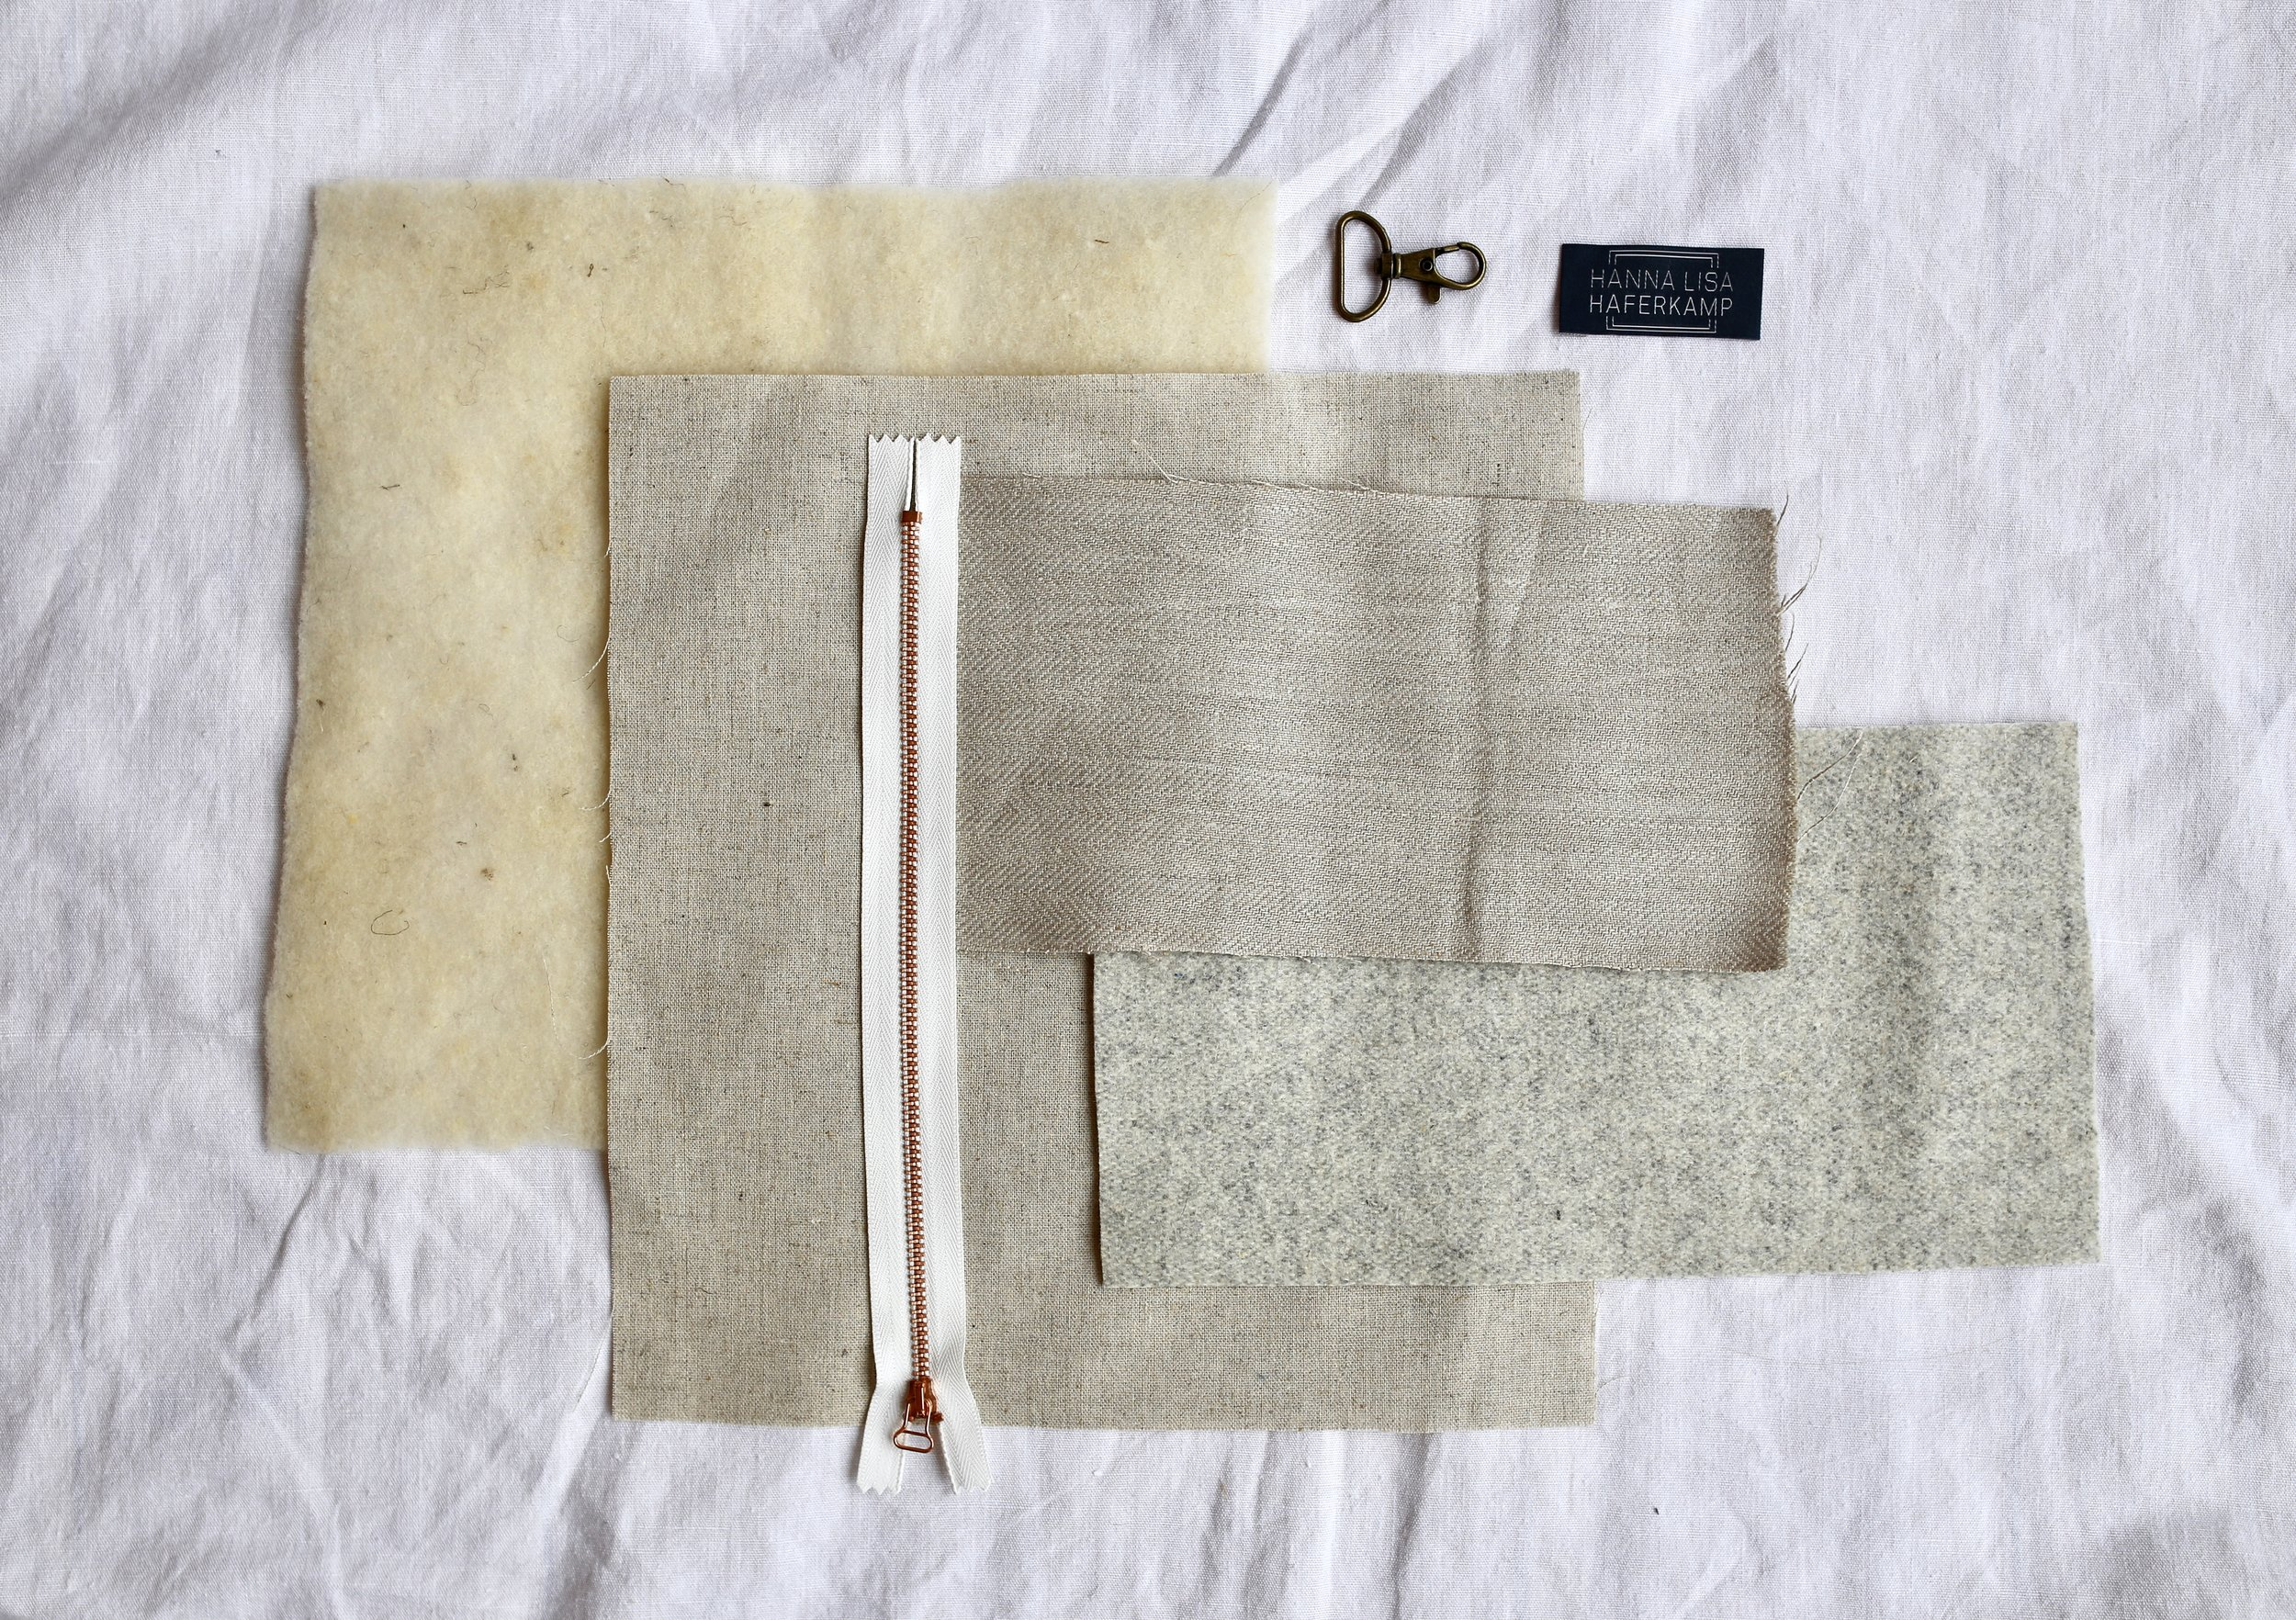 Loosely from left to right: Wool interfacing, linen & viscose lining, zipper, Austrian herringbone linen, wool contrast fabric, carabiner & label.